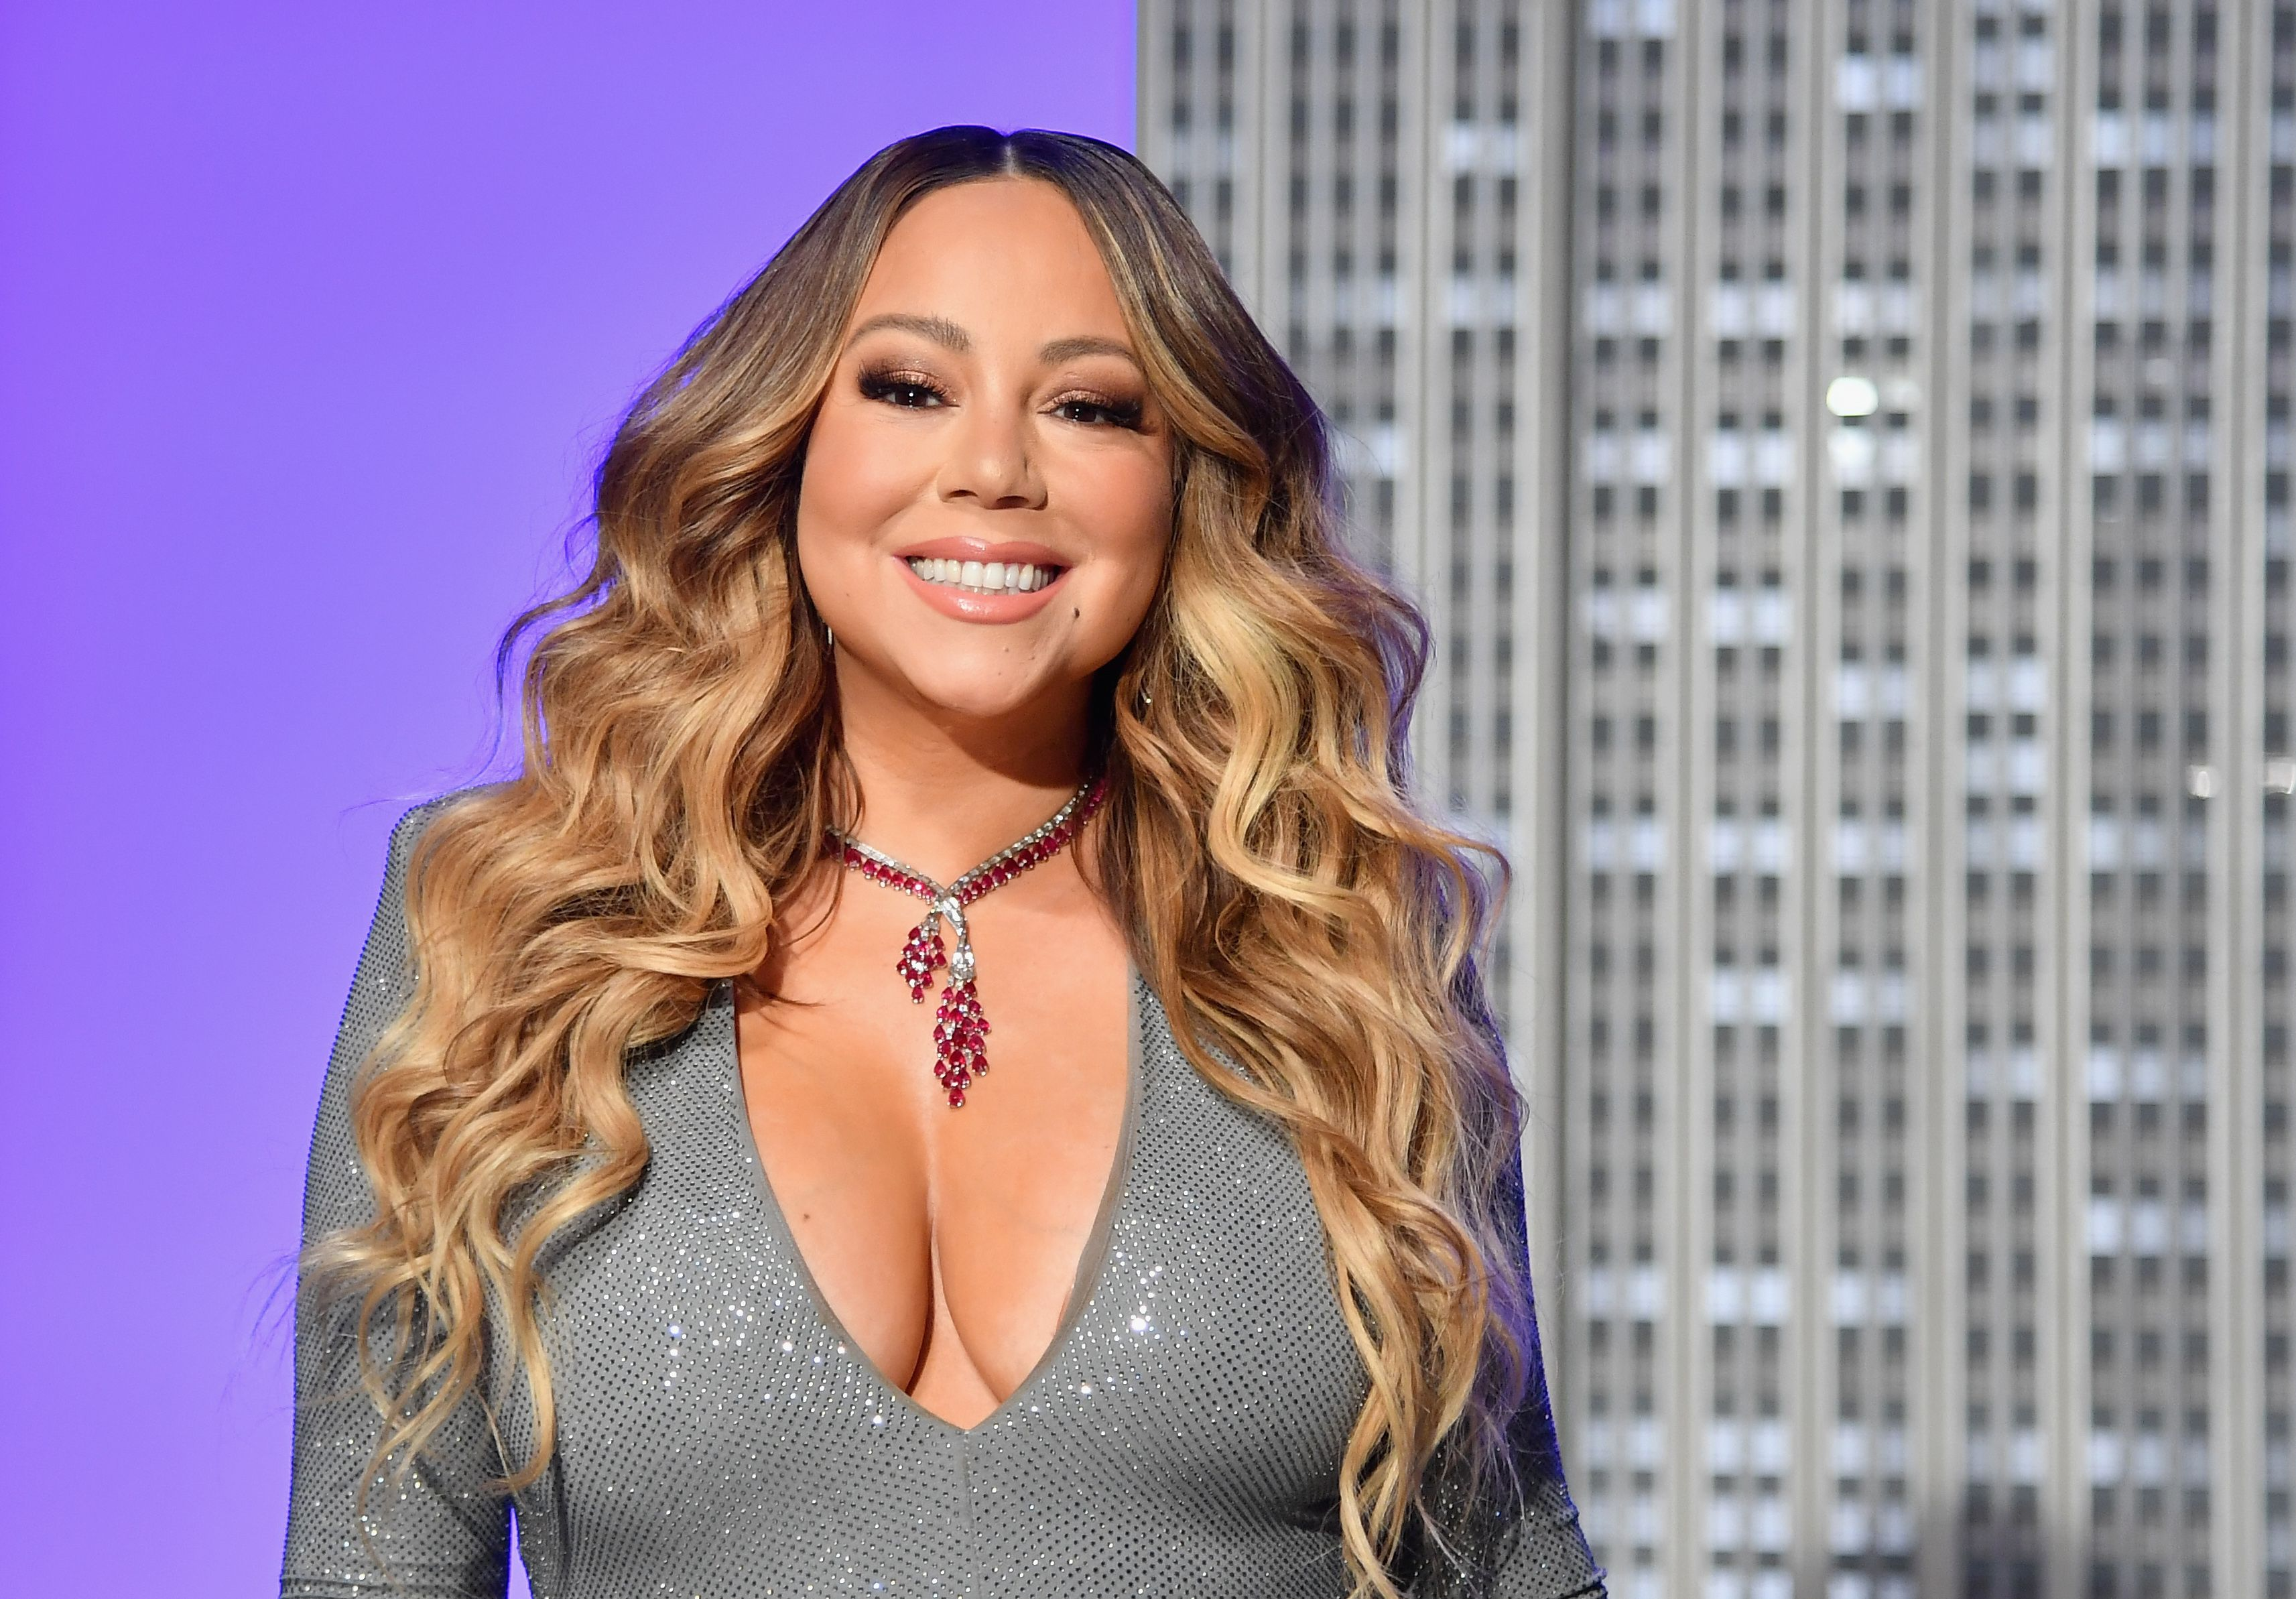 Mariah Carey arbeitete in den 90ern an Alternative-Rock-Album